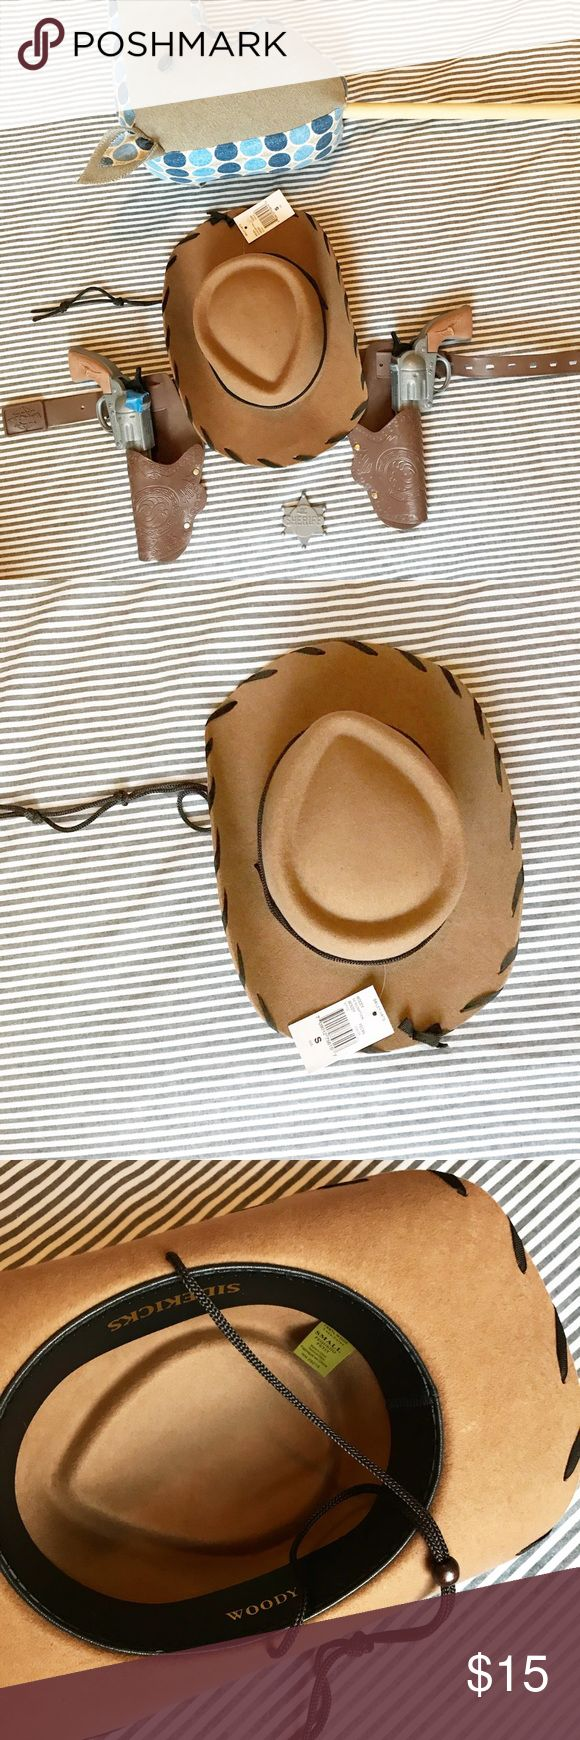 "Kids cowboy hat Kids cowboy hat, the ""woody"" style. Brand new, tags still attached. I️ bought for my son's 5th birthday to be part of his real ""cowboy"" outfit present, but it's a little small. bailey Accessories Hats"